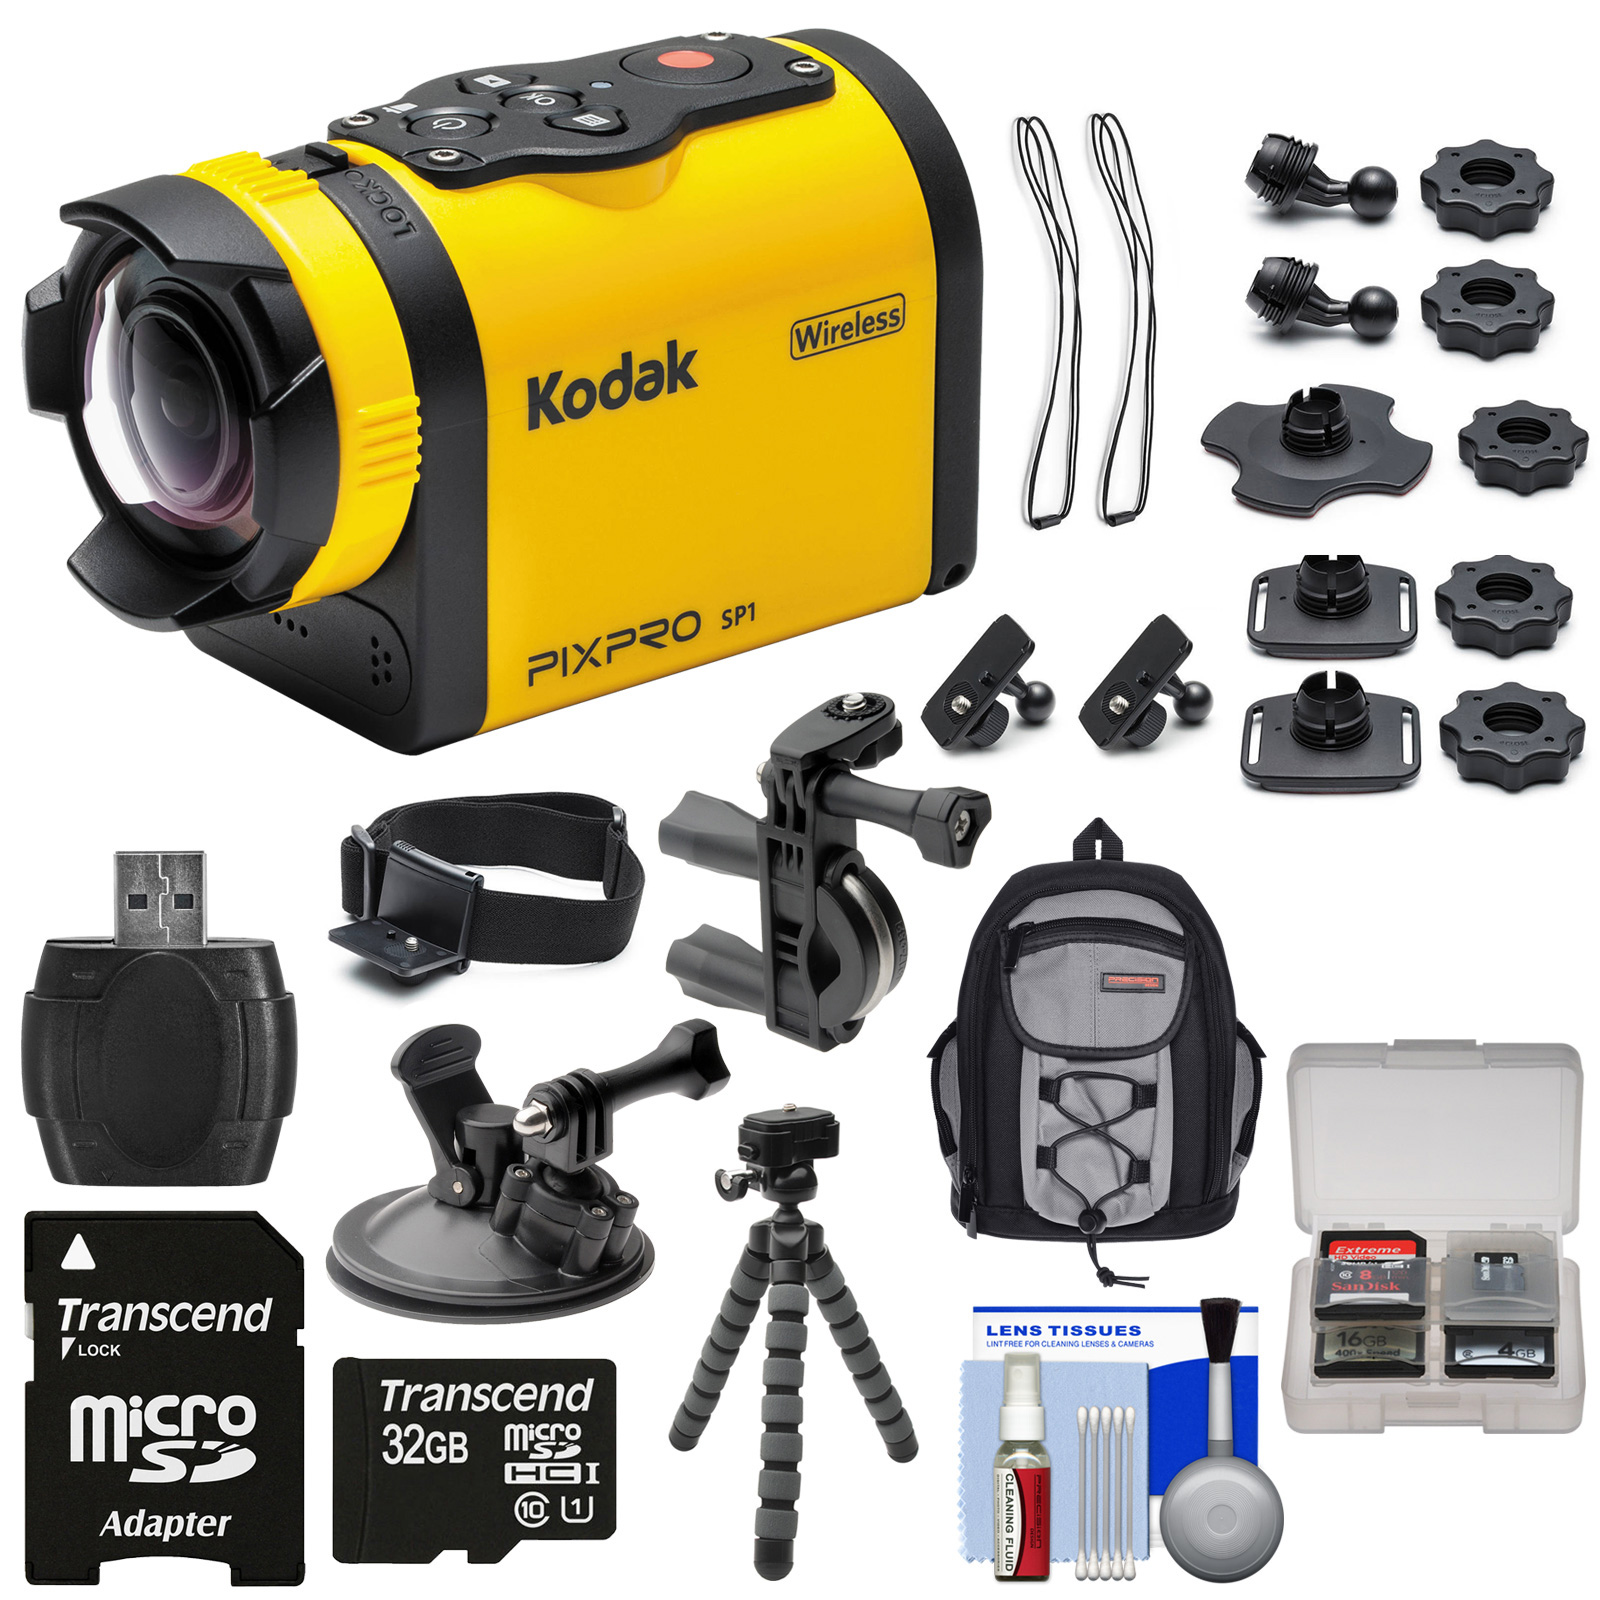 Kodak PixPro SP1 Video Action Camera Camcorder - Aqua Sport Pack with Handlebar & Suction Cup Mounts + 32GB Card + Backpack + Tripod + Kit